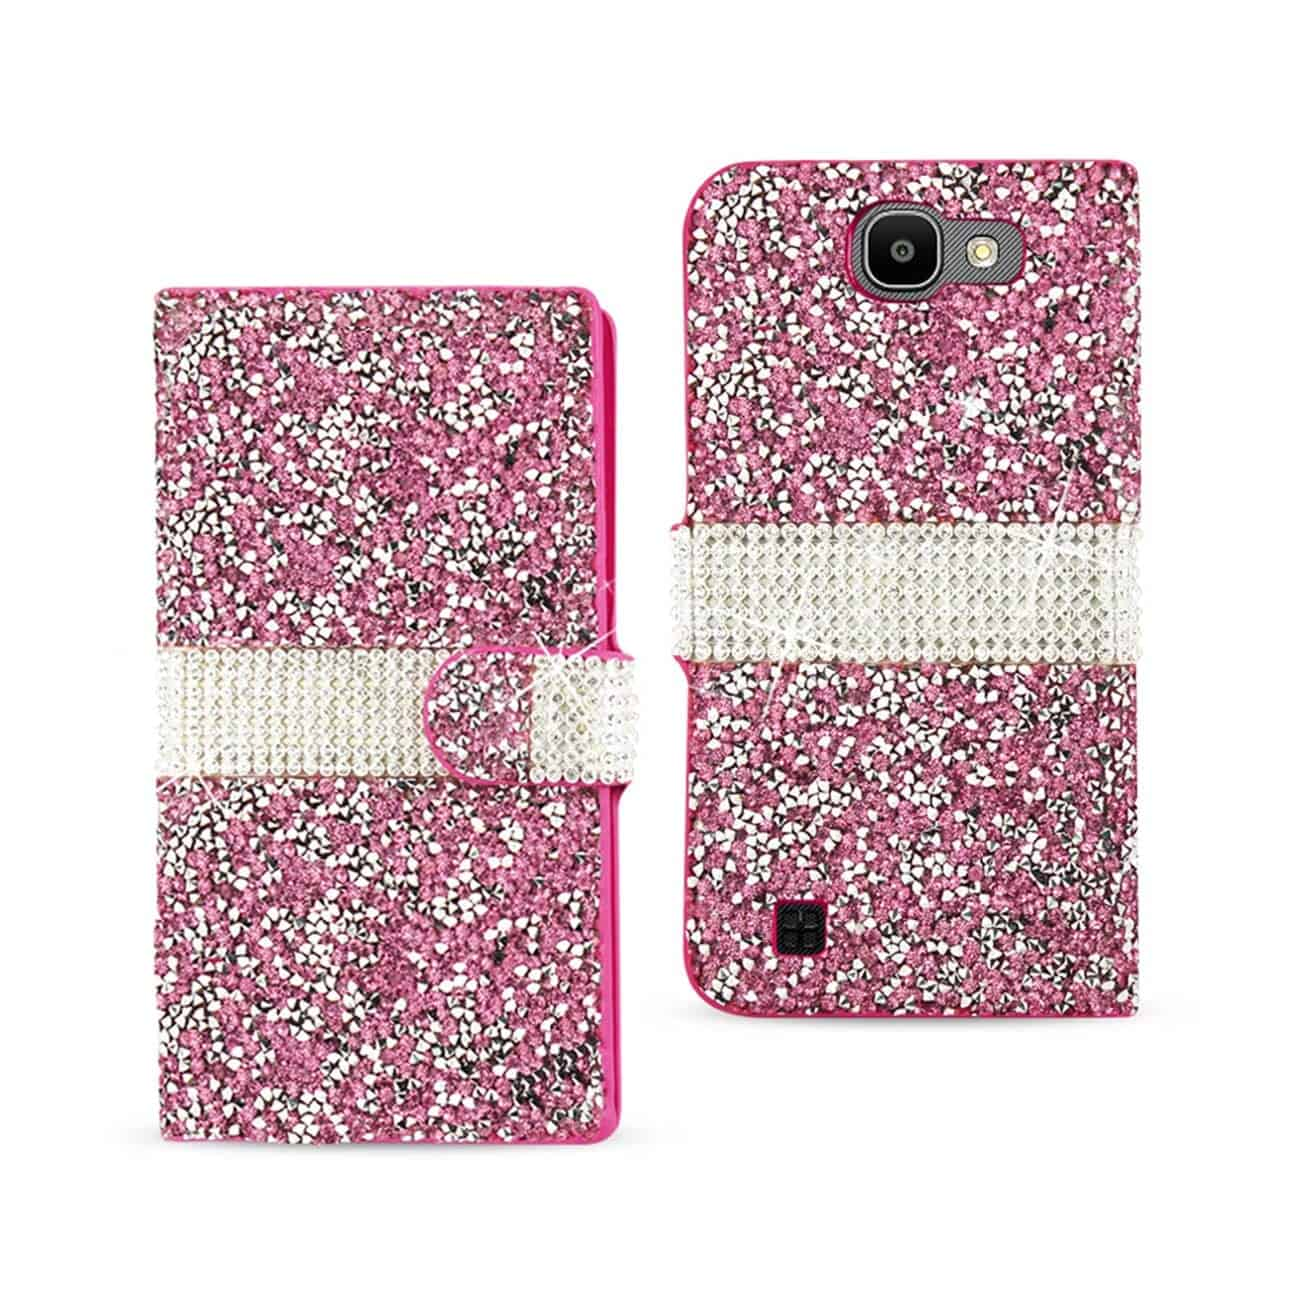 LG SPREE JEWELRY RHINESTONE WALLET CASE IN PINK